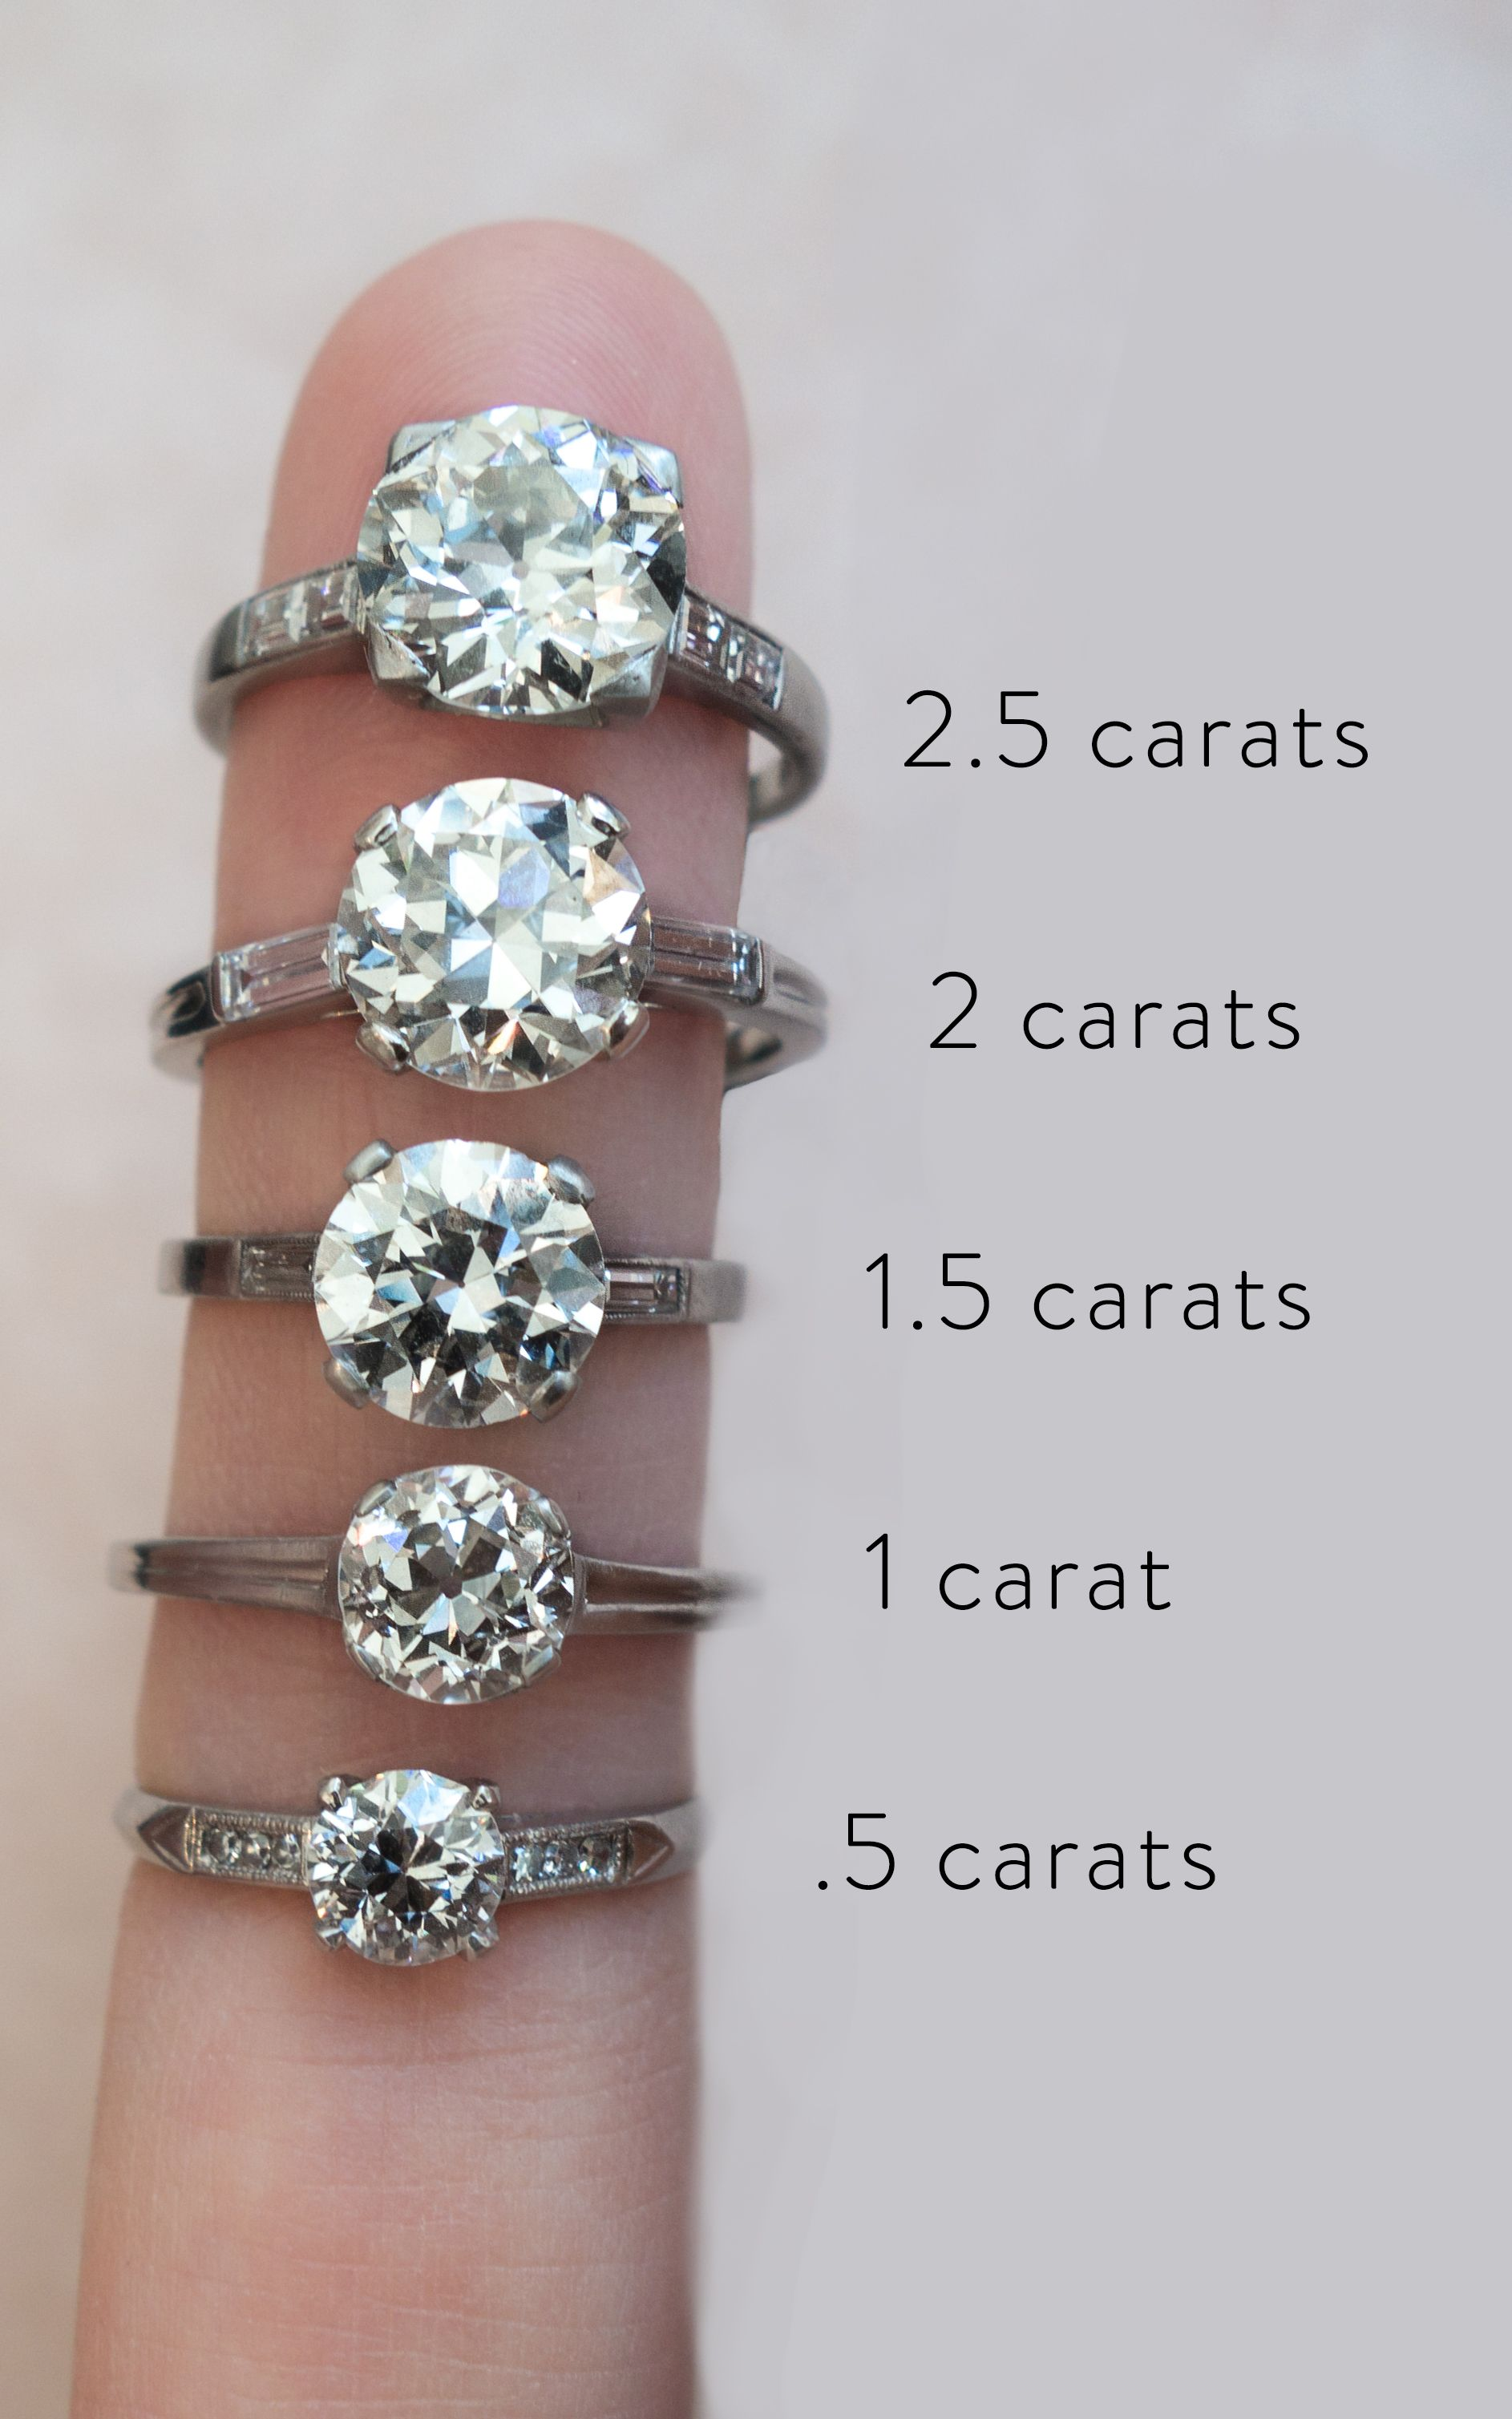 Actual Diamond Carat Size On A Hand Diamond Carat Size Engagement Rings Wedding Rings Engagement